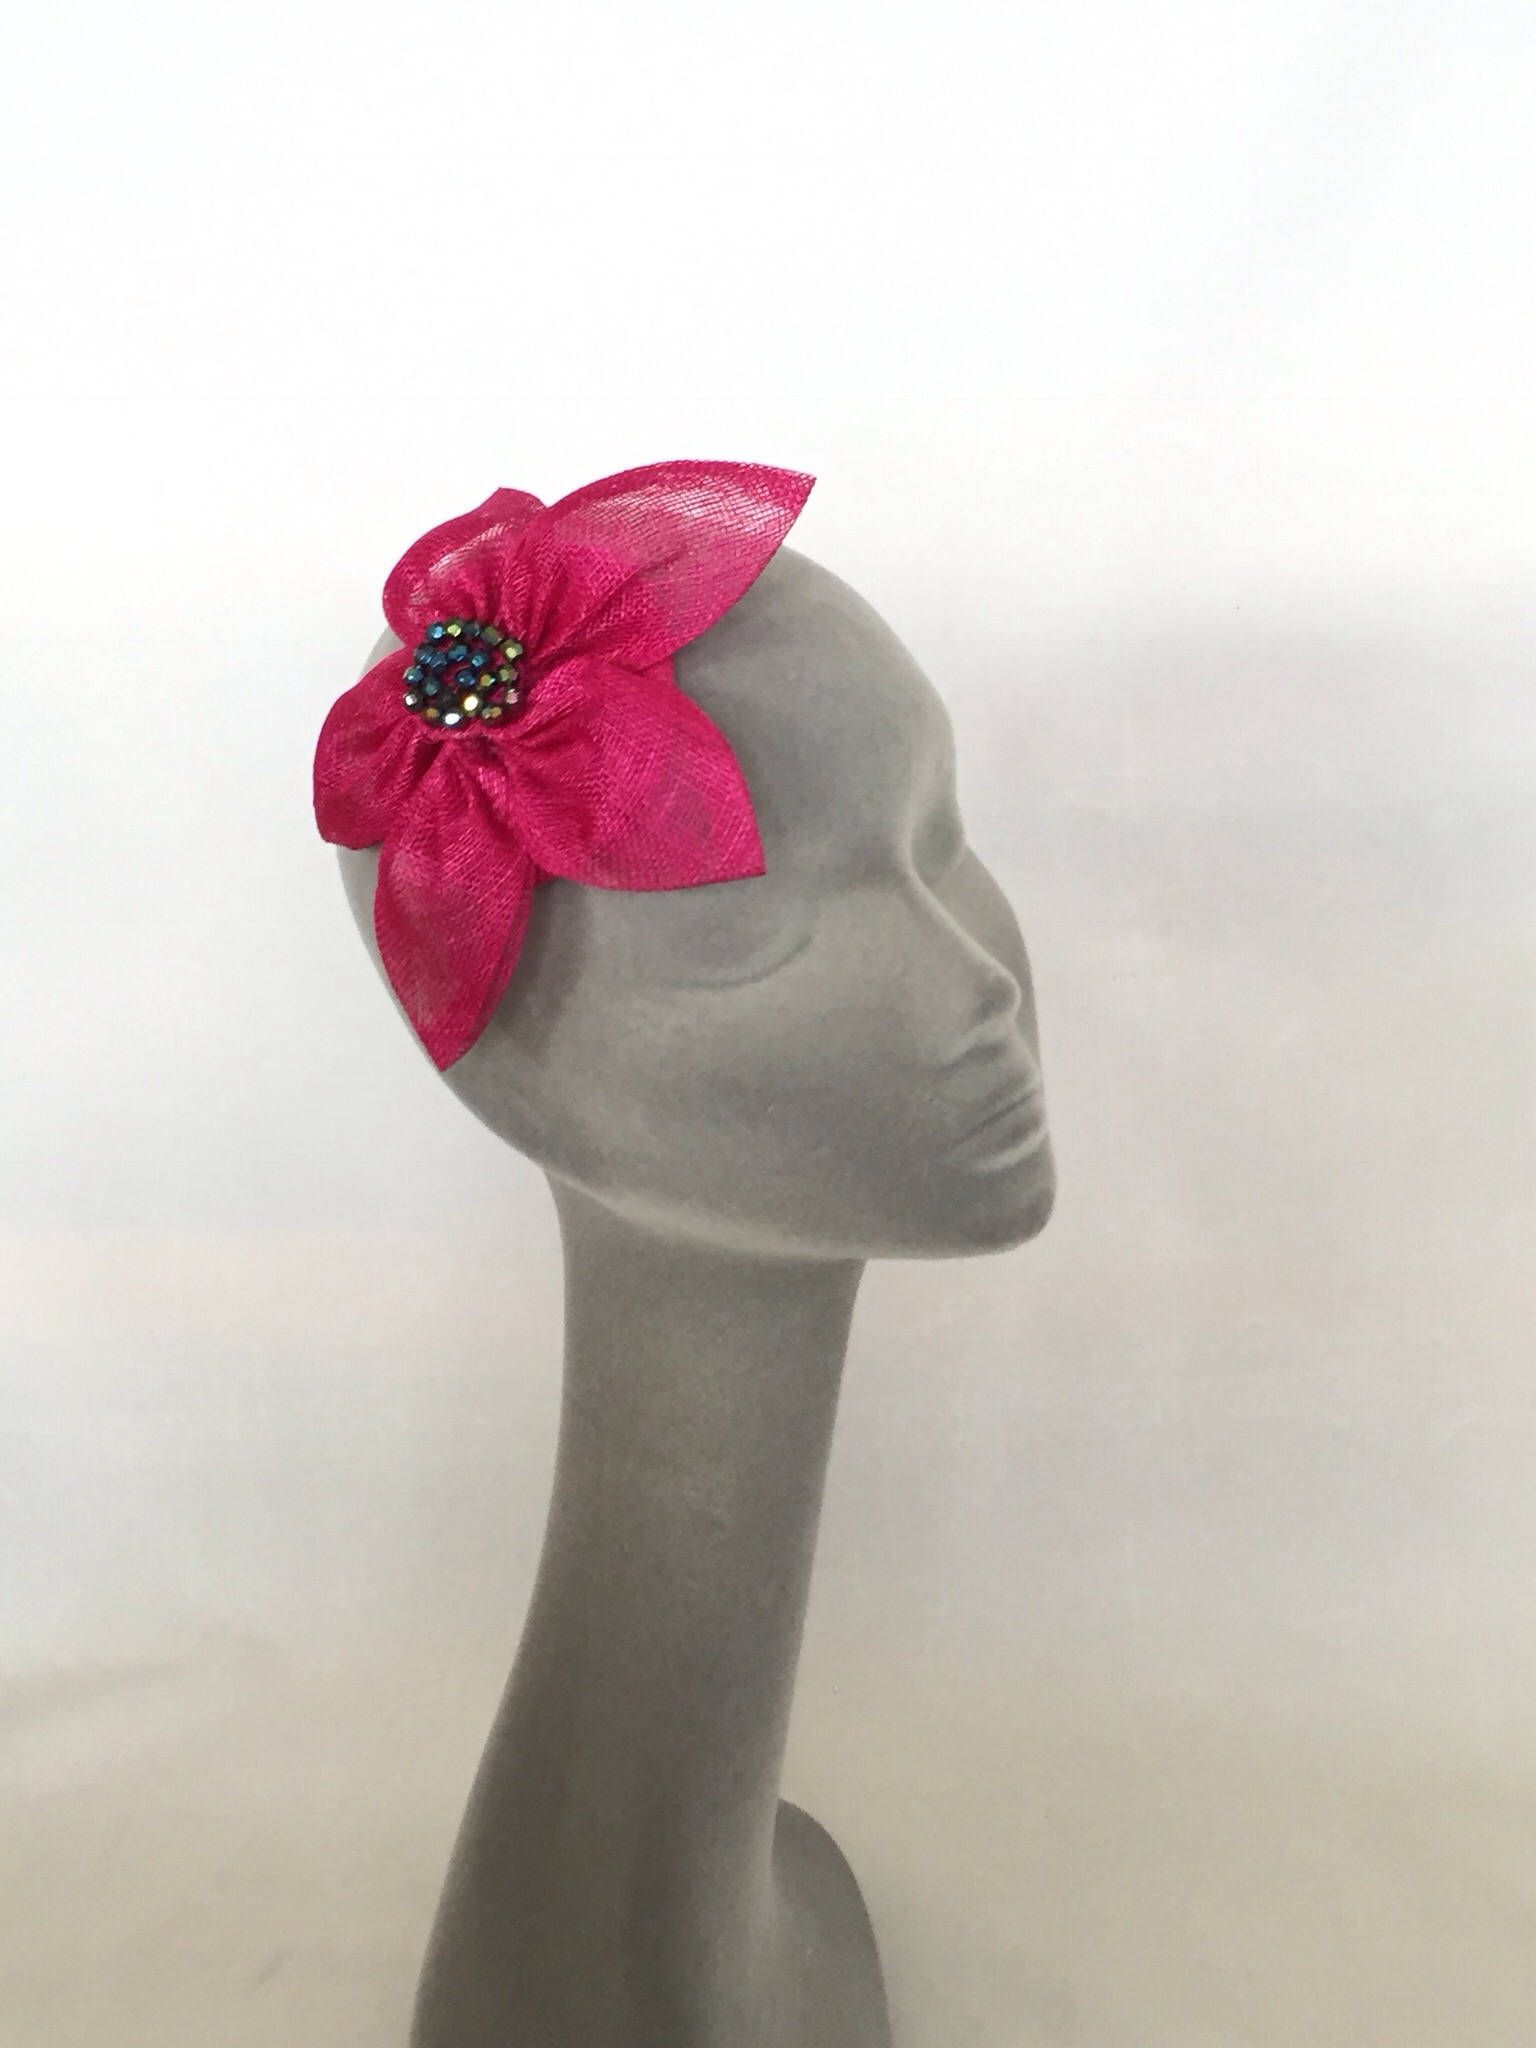 c538e1f6bef6d LAURA - Geisha Pink Flower Fascinator Headpiece Hatinator Hat for Weddings  Prom Kentucky Derby Royal Ascot